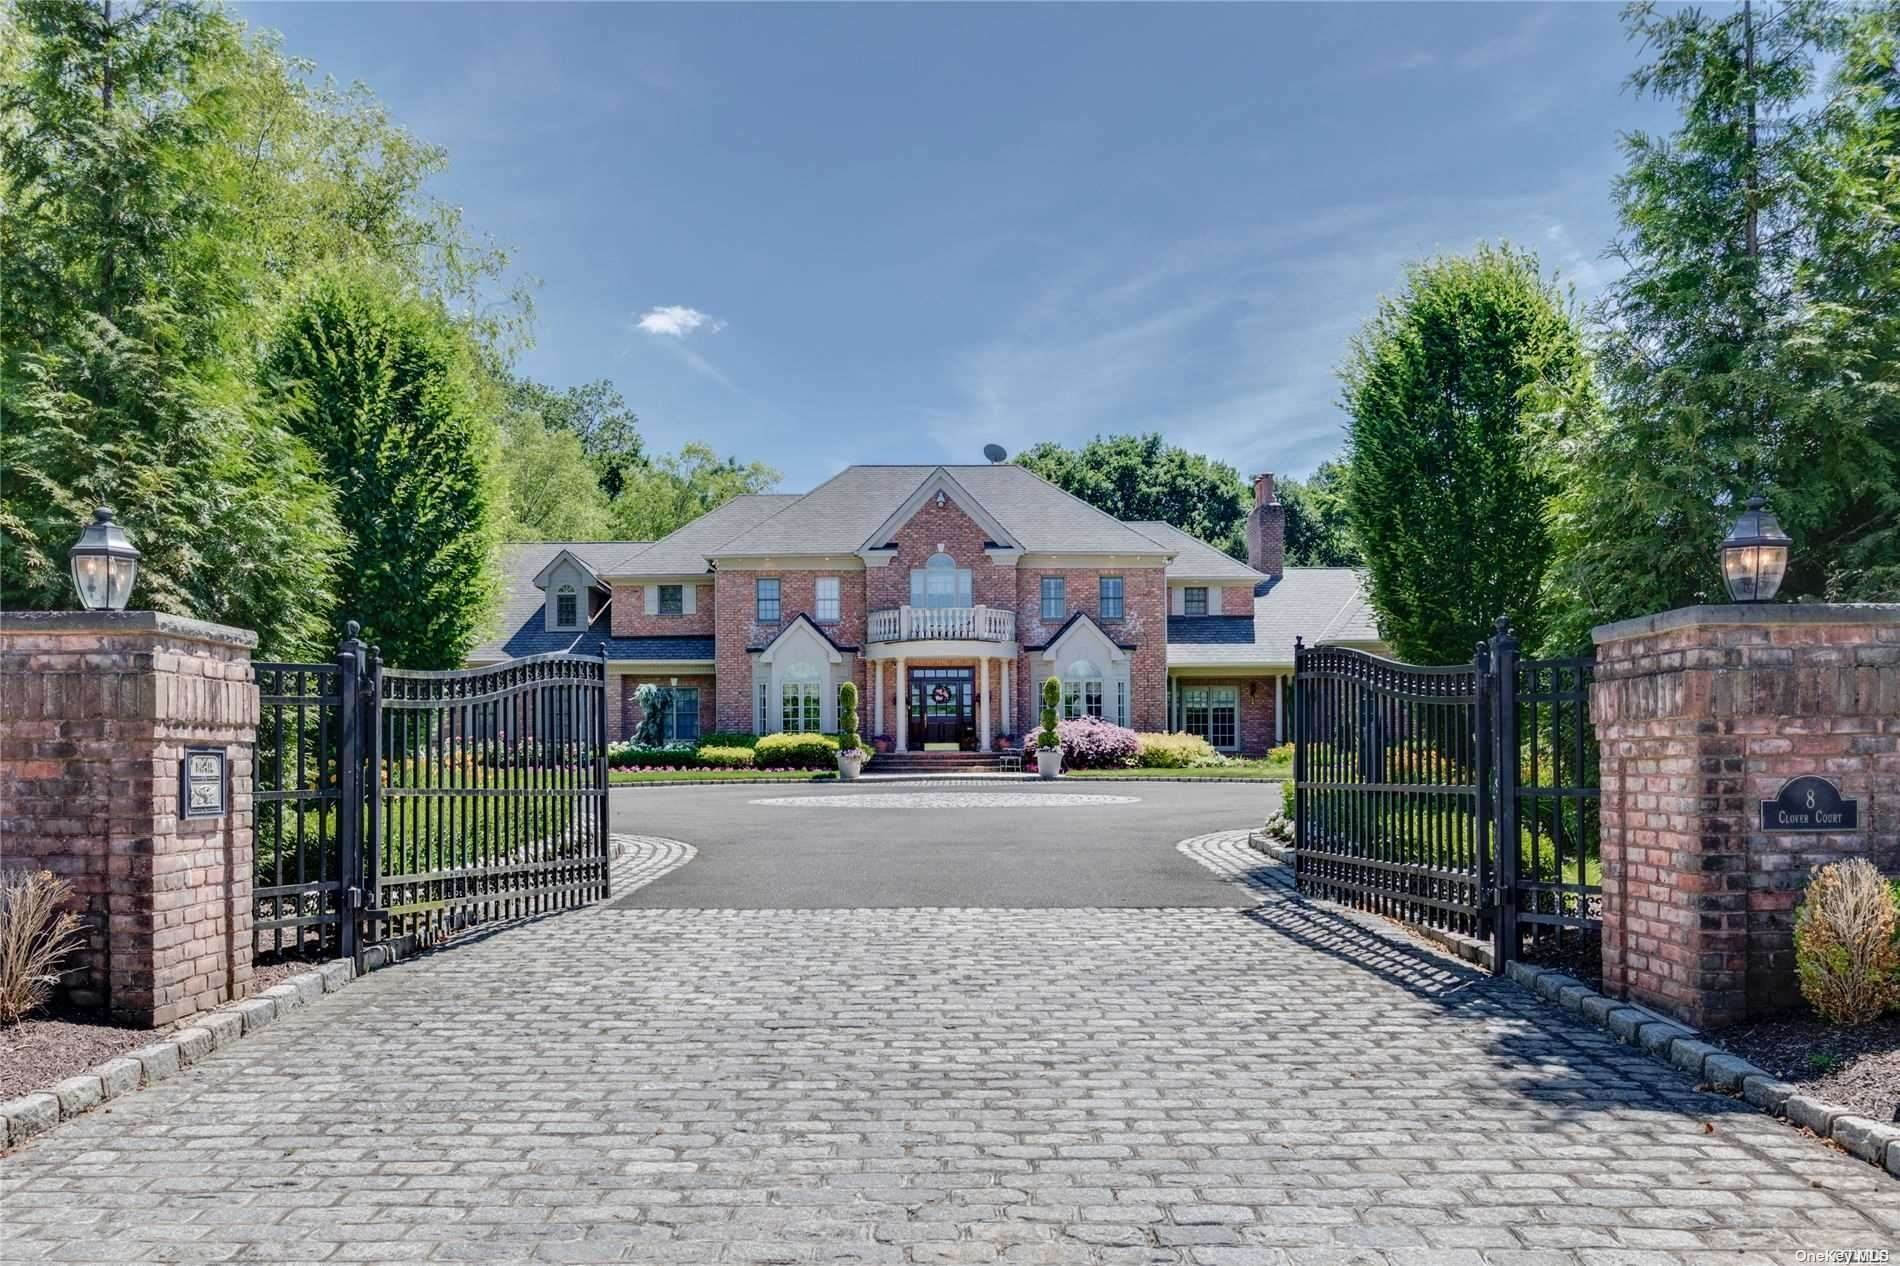 Residential for Sale at 8 Clover Court, Muttontown, NY 11732 Muttontown, New York 11732 United States